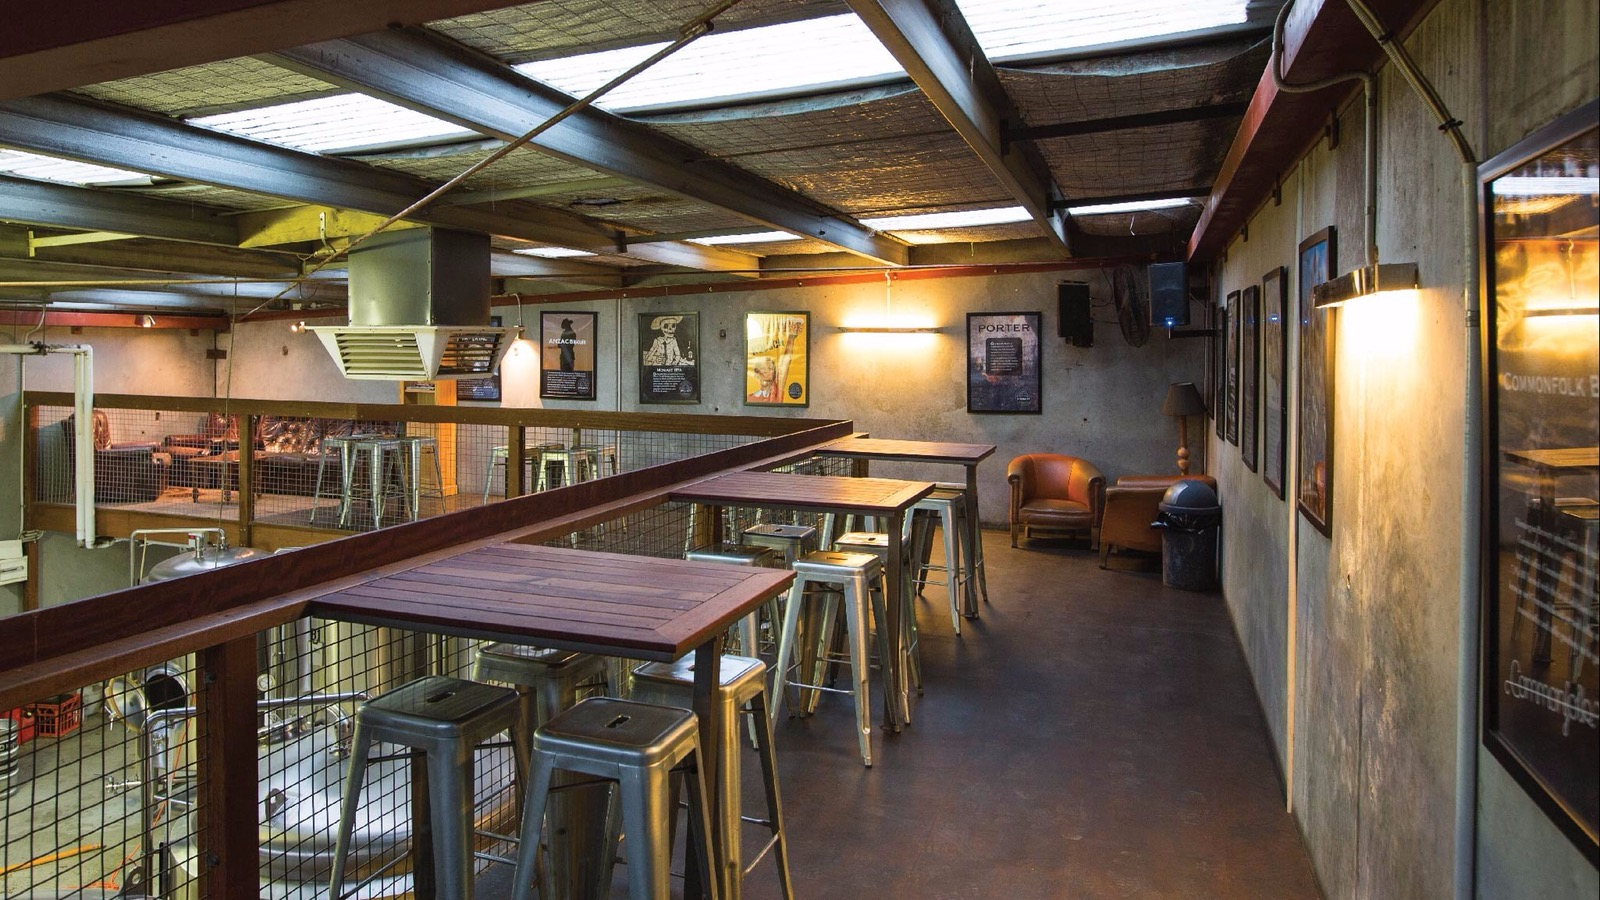 mornington peninsula brewery mezzanine